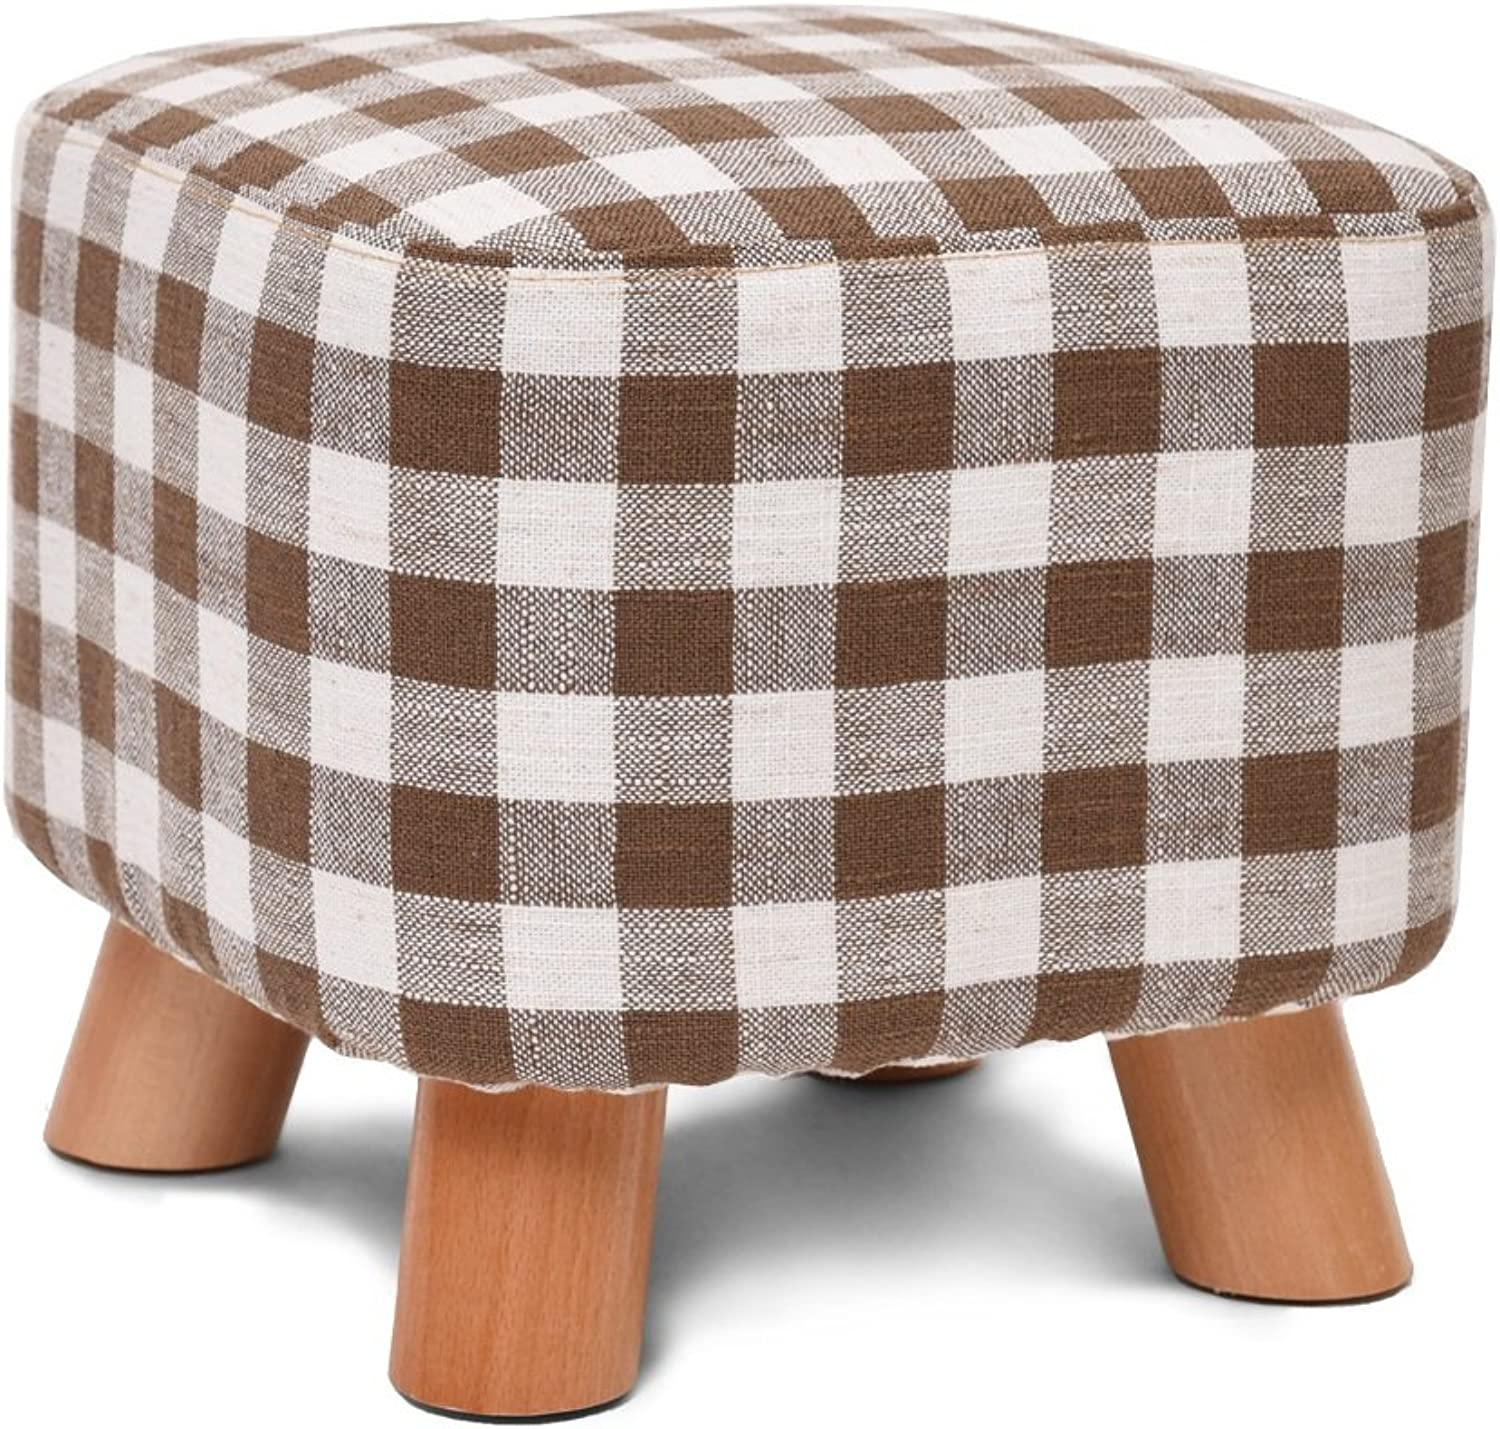 Solid wood shoes bench   bedroom stool   geometric fabric stool   creative square stool   fabric stool   sofa stool   coffee table bench   home stool   Leisure Stool   (2825cm) -by TIANTA